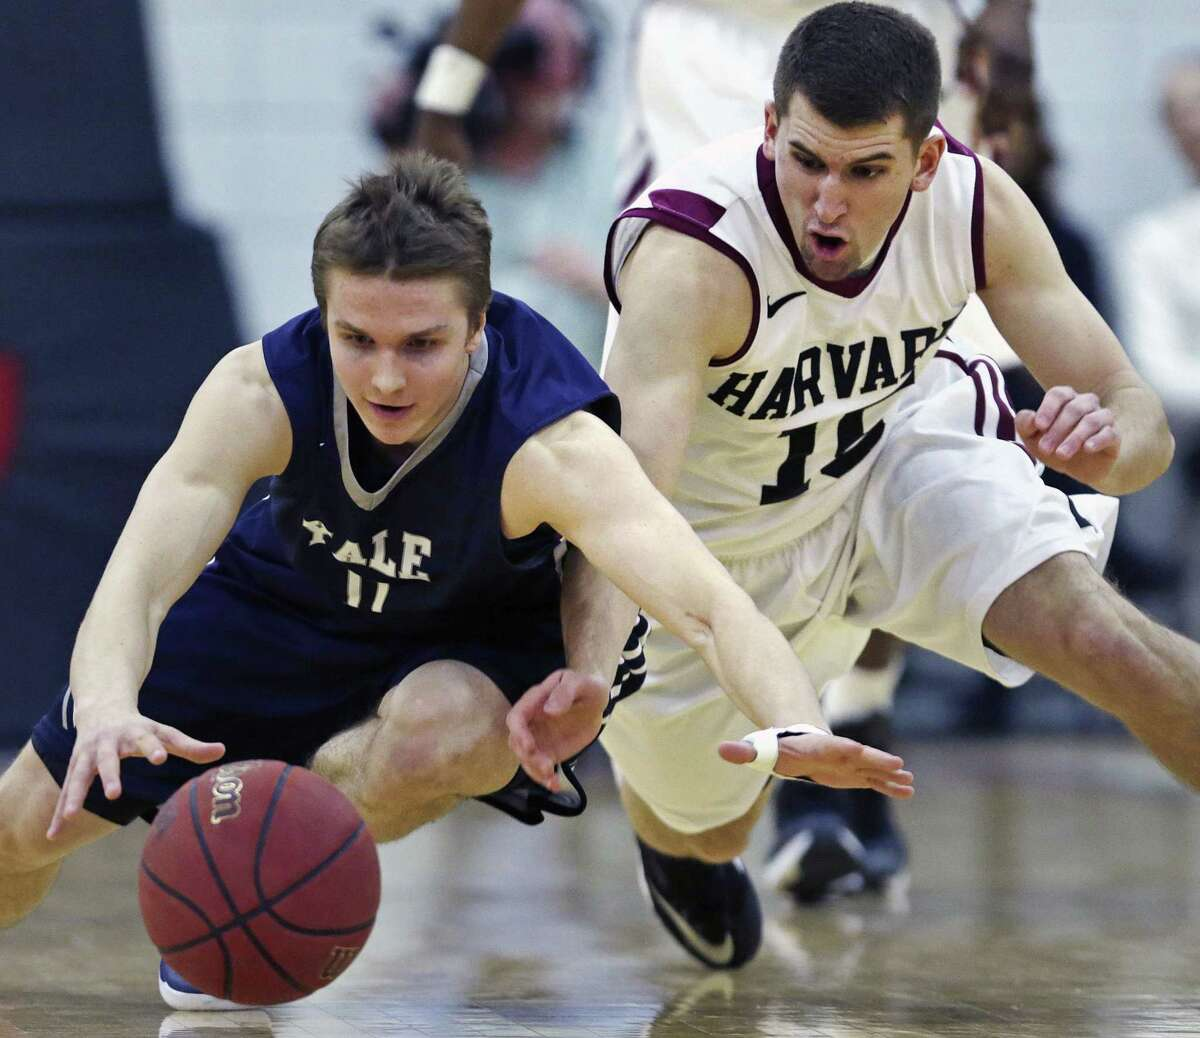 Yale guard Makai Mason, left, and Harvard guard Corbin Miller scramble for a loose ball during the first half of the Bulldogs' 62-52 win on Friday night in Cambridge, Mass.